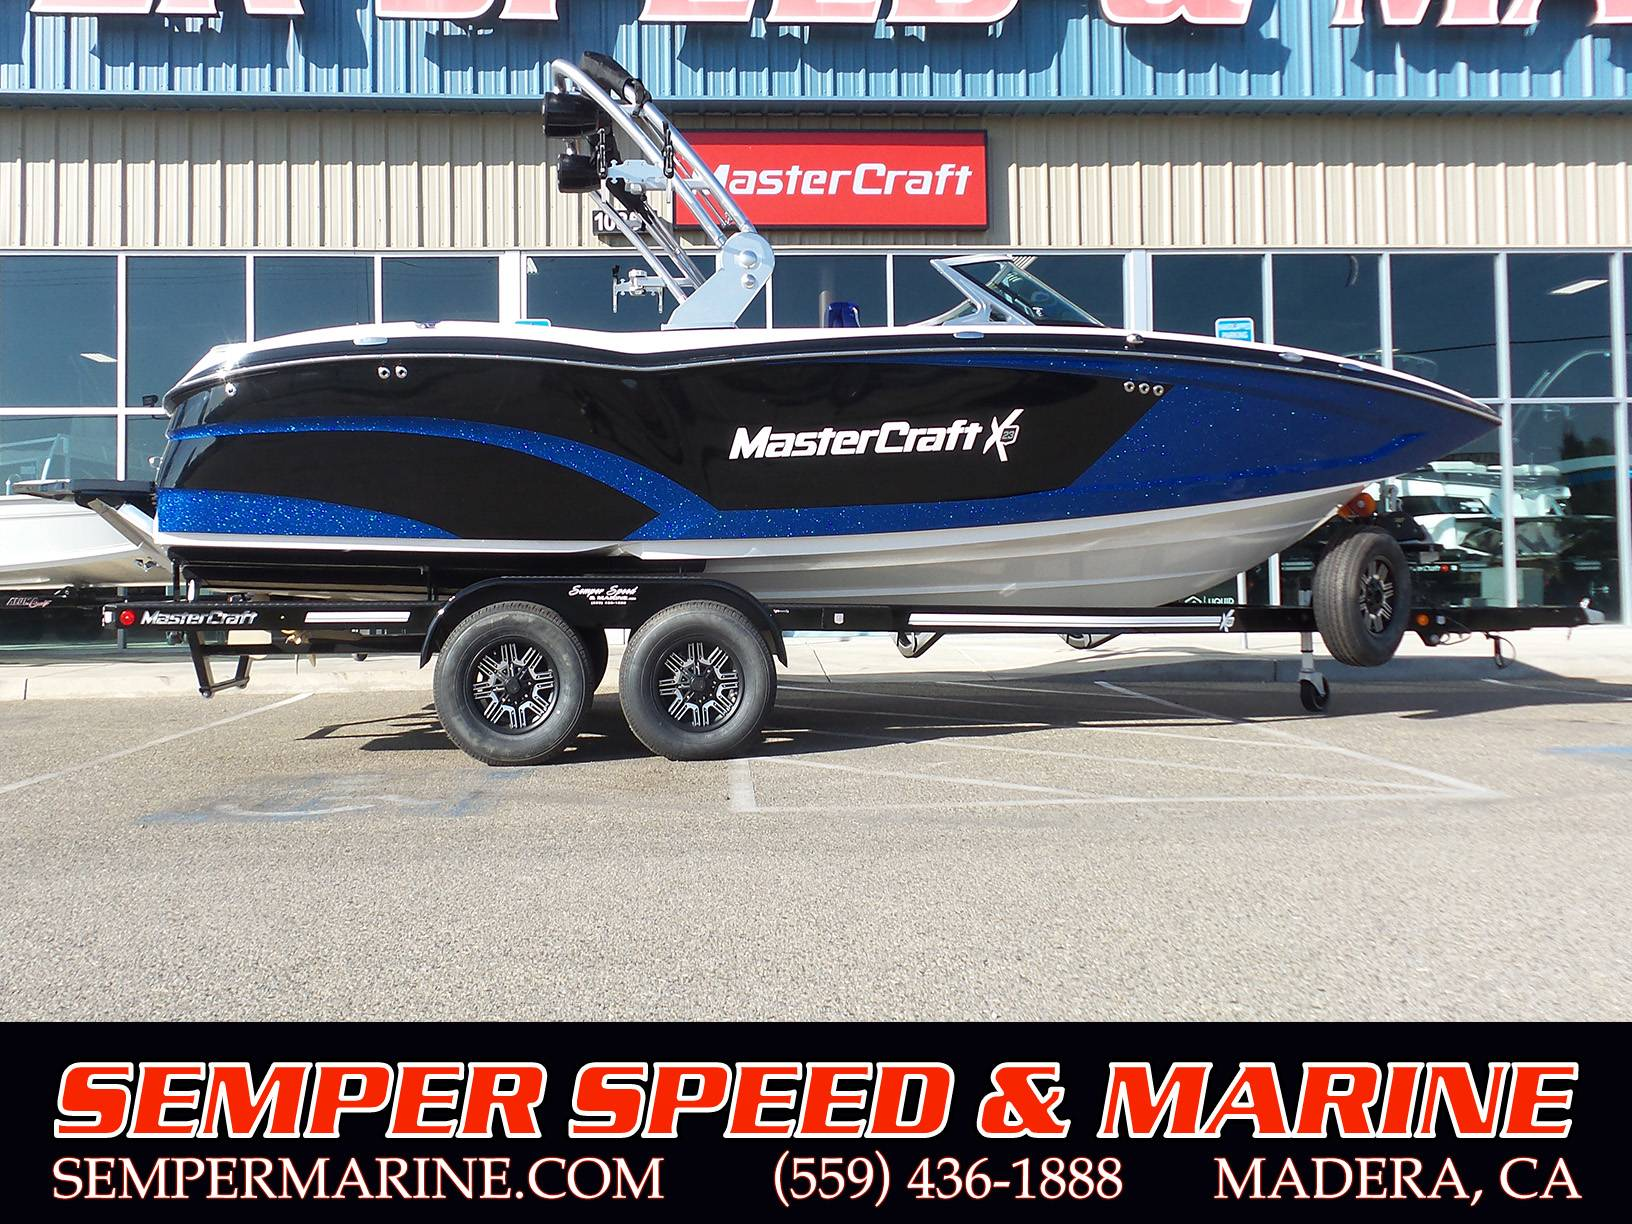 Wiring Diagram Mastercraft X23 Electrical Diagrams For Boat Motor Options Newmotorspot Co Dummies 2018 Canadian Blue